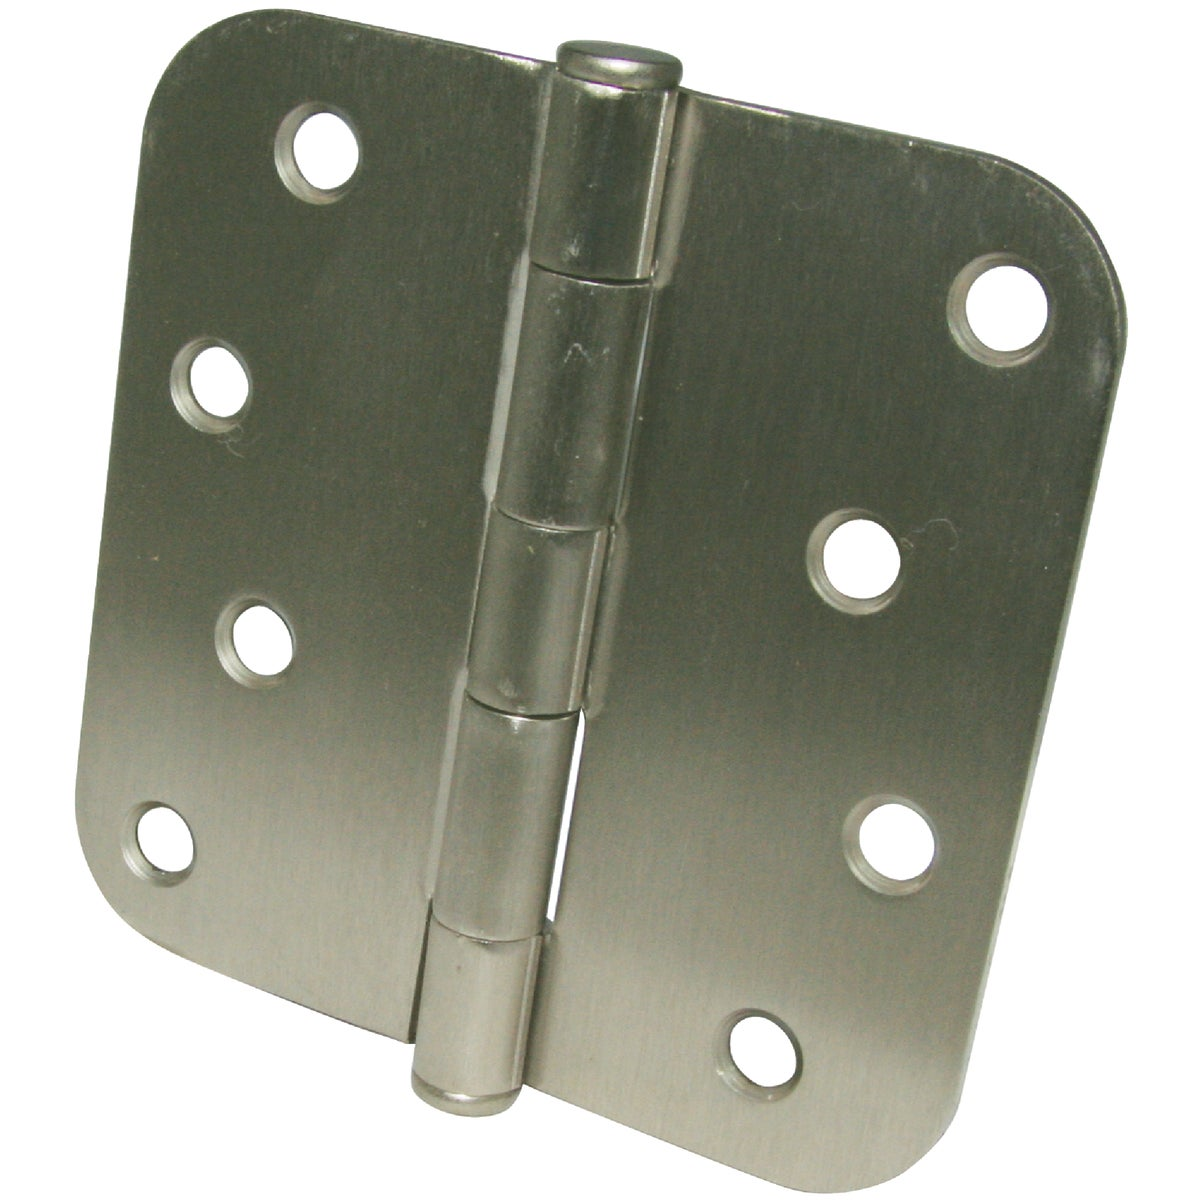 "4"" 5/8"" RAD SN 3PK HINGE - 61751 by Ultra Hardware"